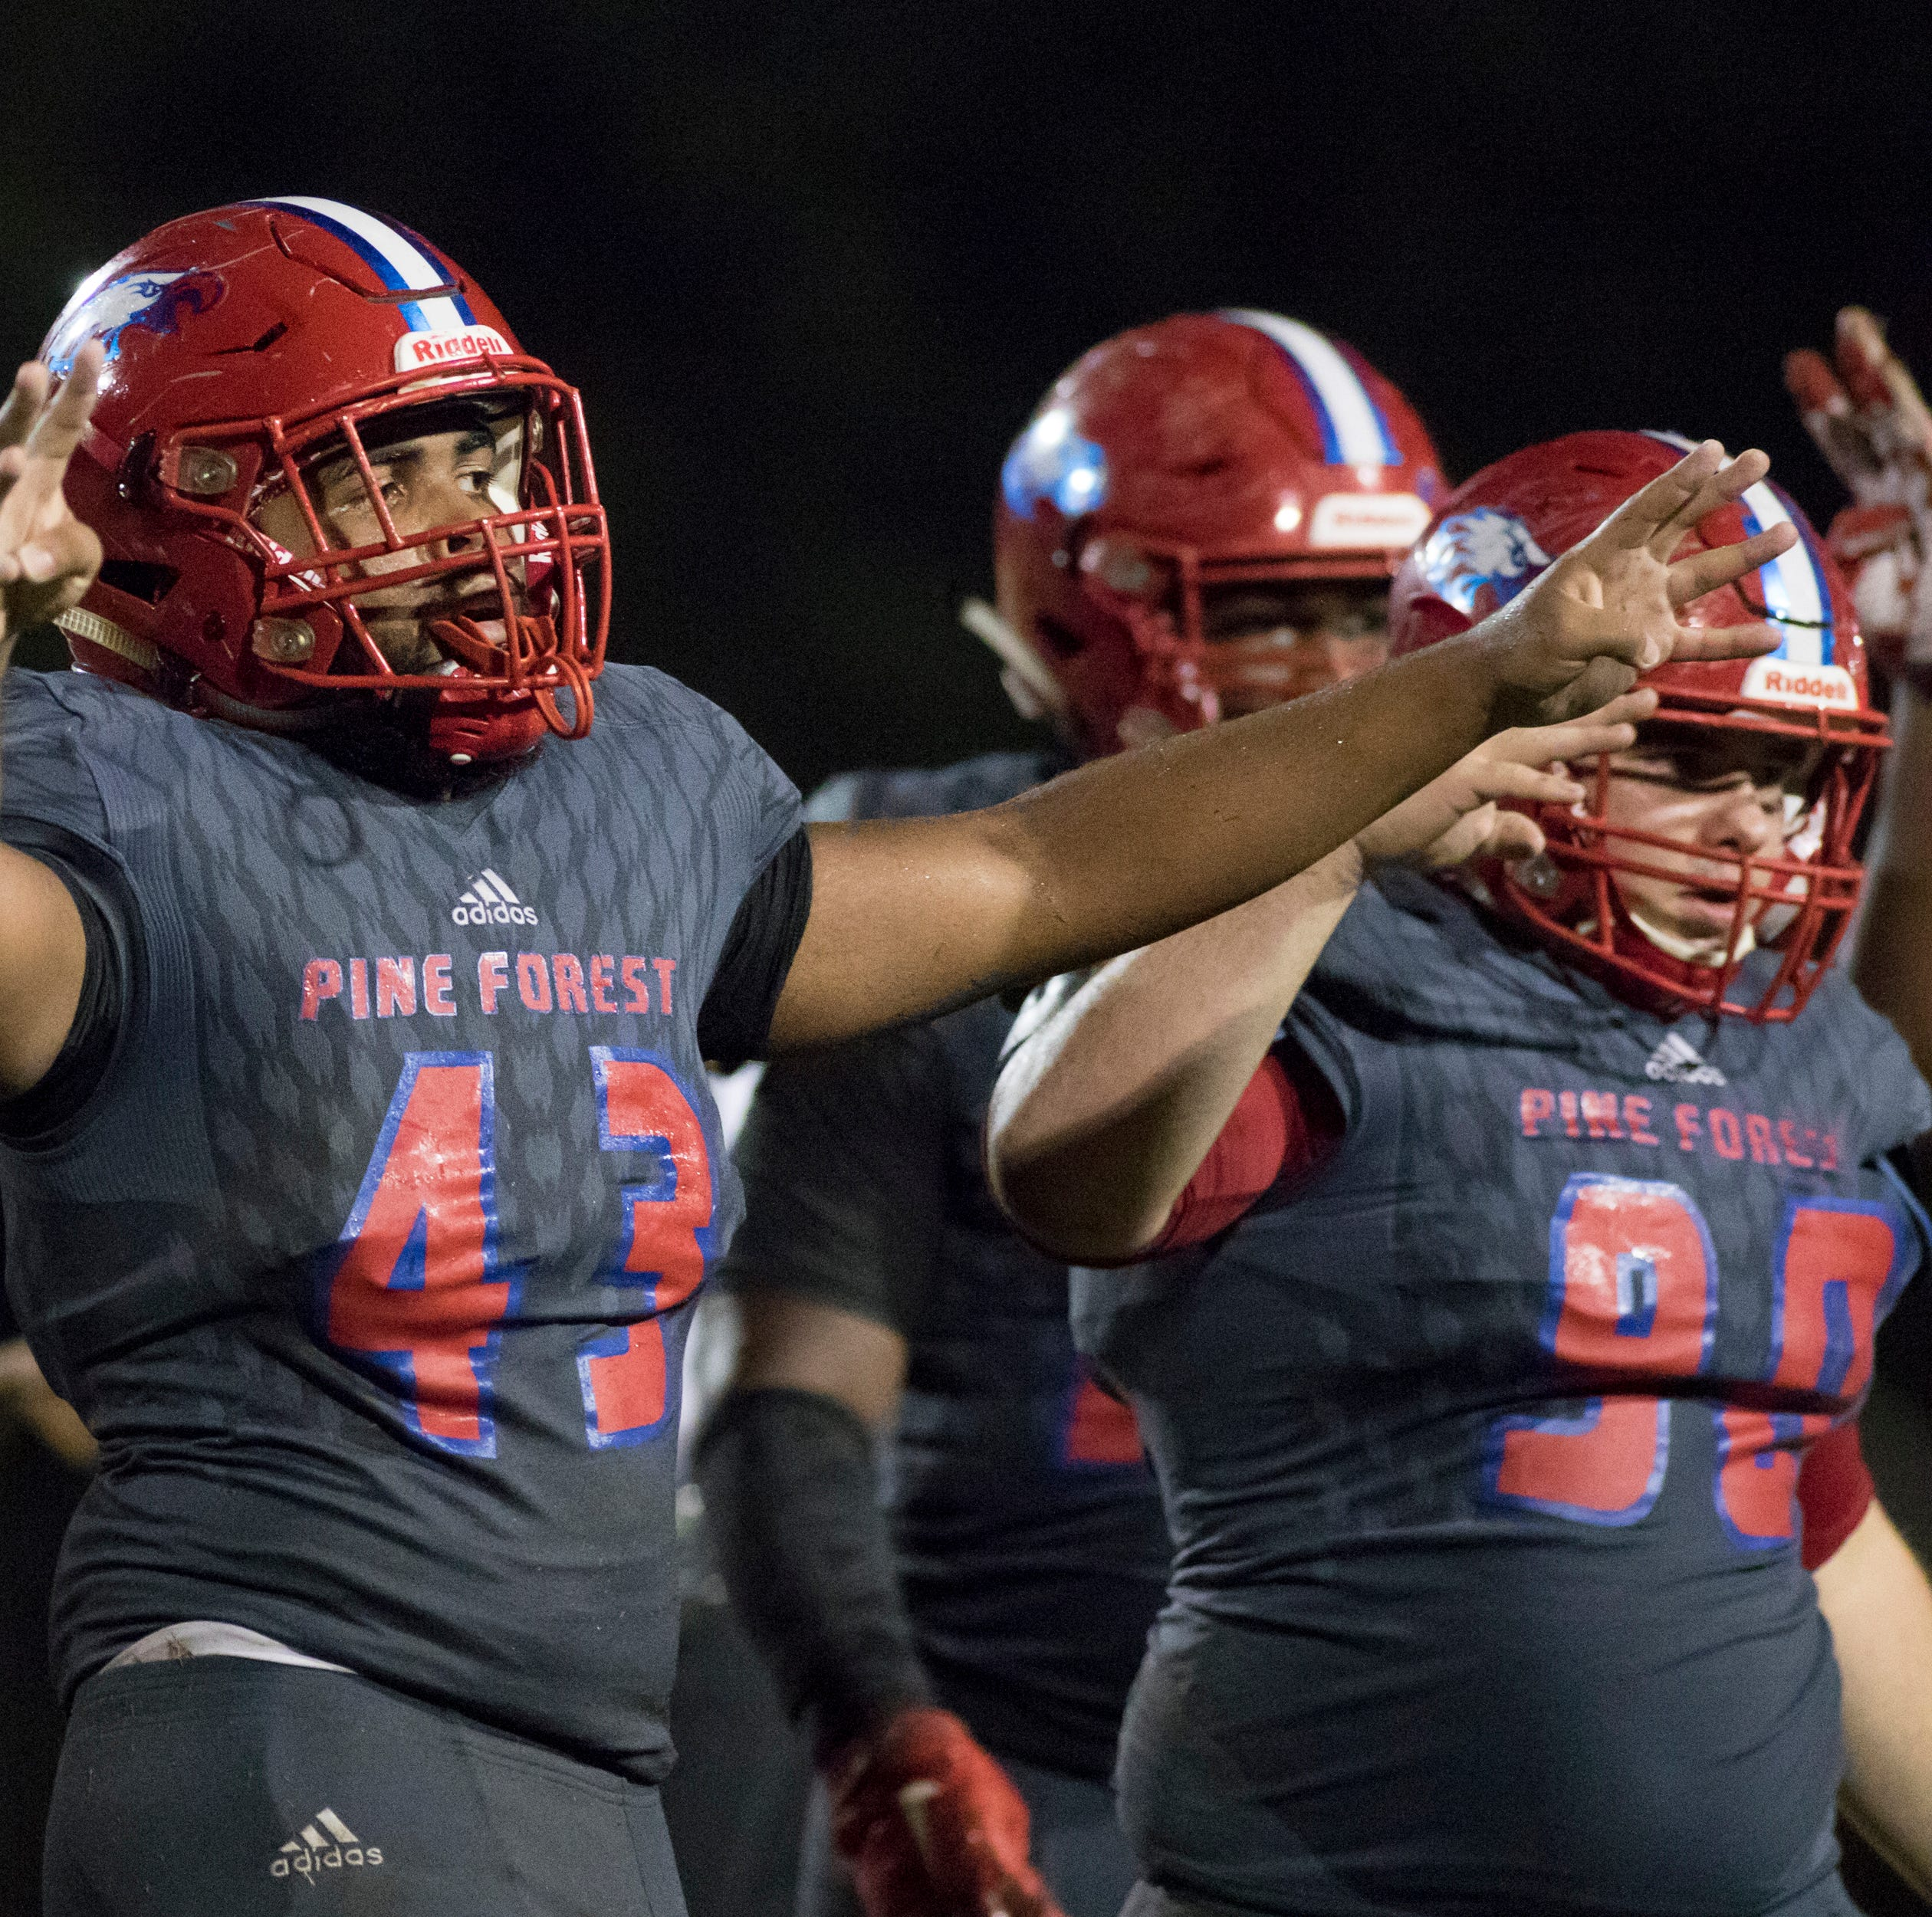 PNJ Power Poll: Pine Forest soars into Top 3 after win over Gulf Breeze